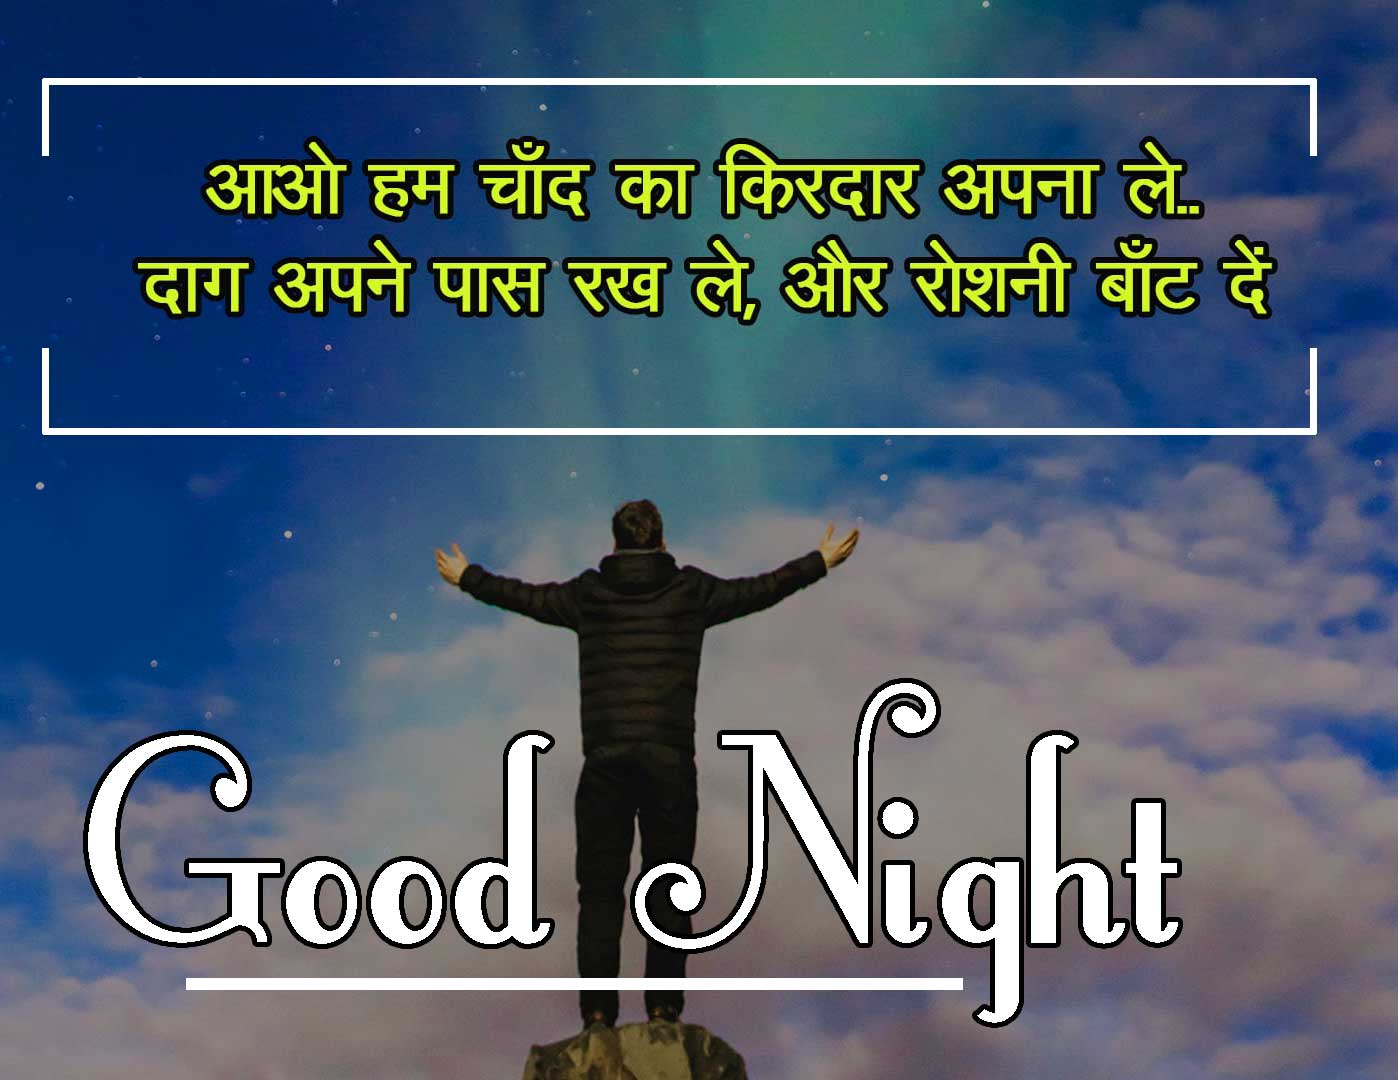 Free Good Night Images With Hindi Shayari Pics Download Free